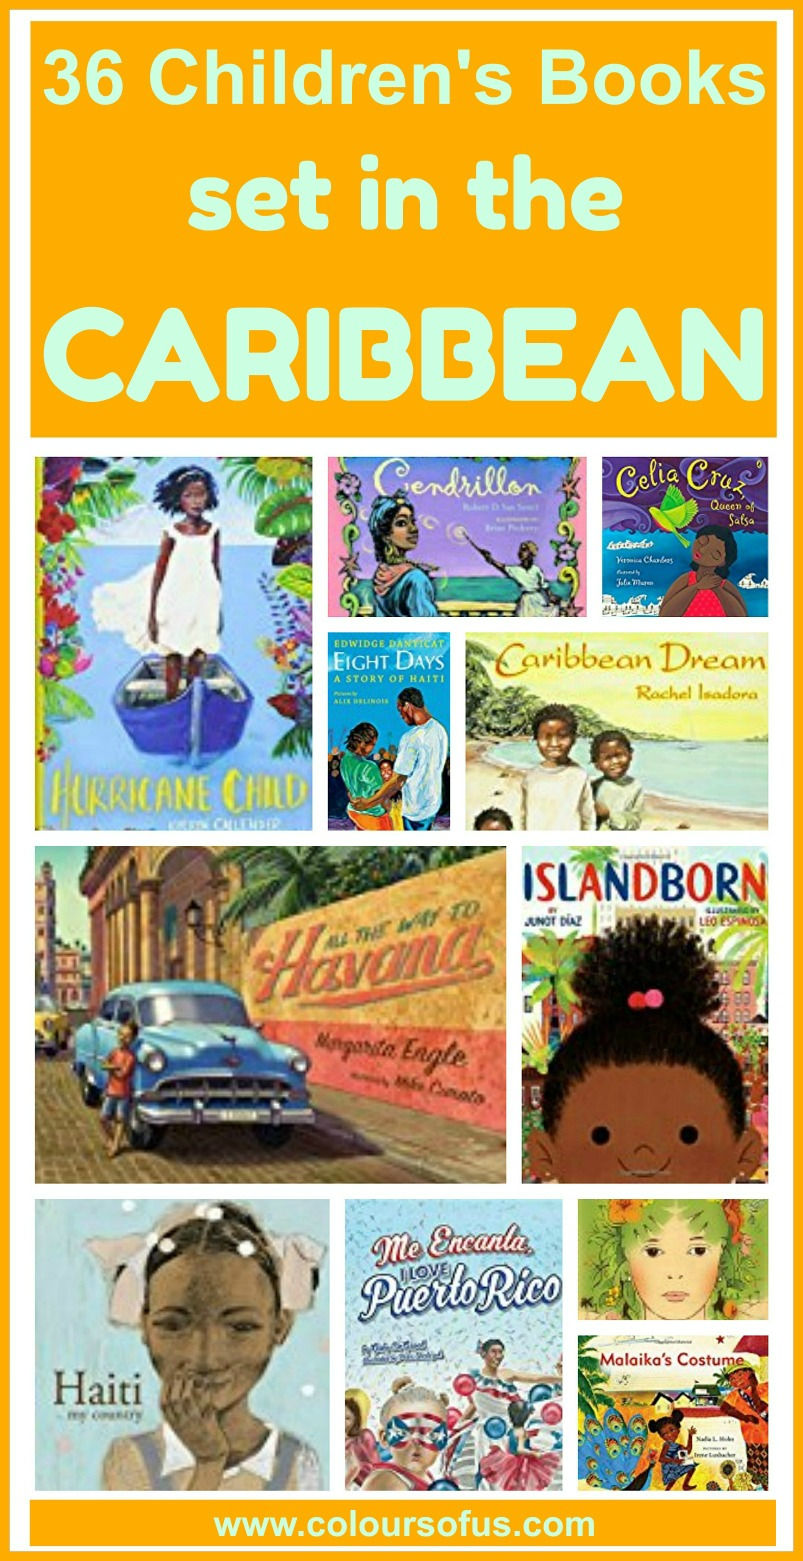 36 Children's Books set in the Caribbean | Colours of Us